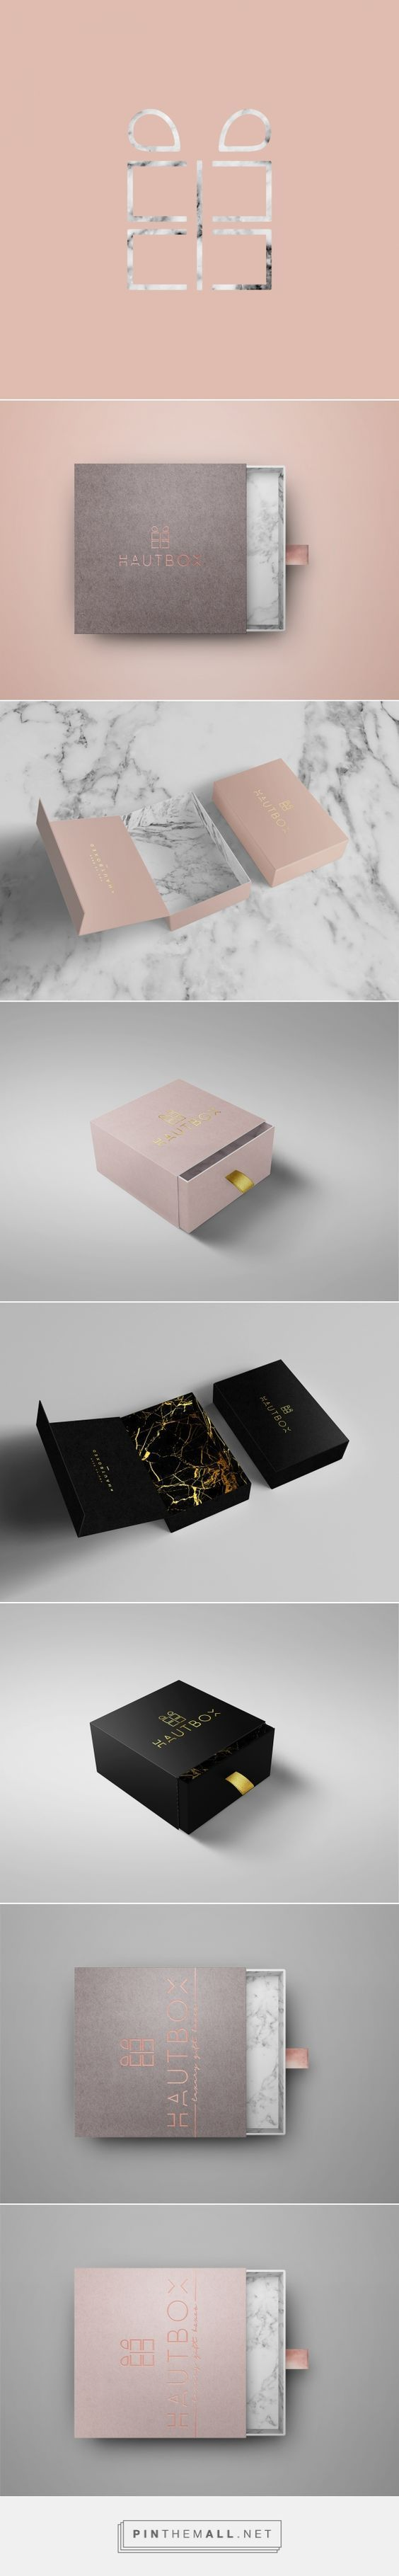 Hautbox Packaging